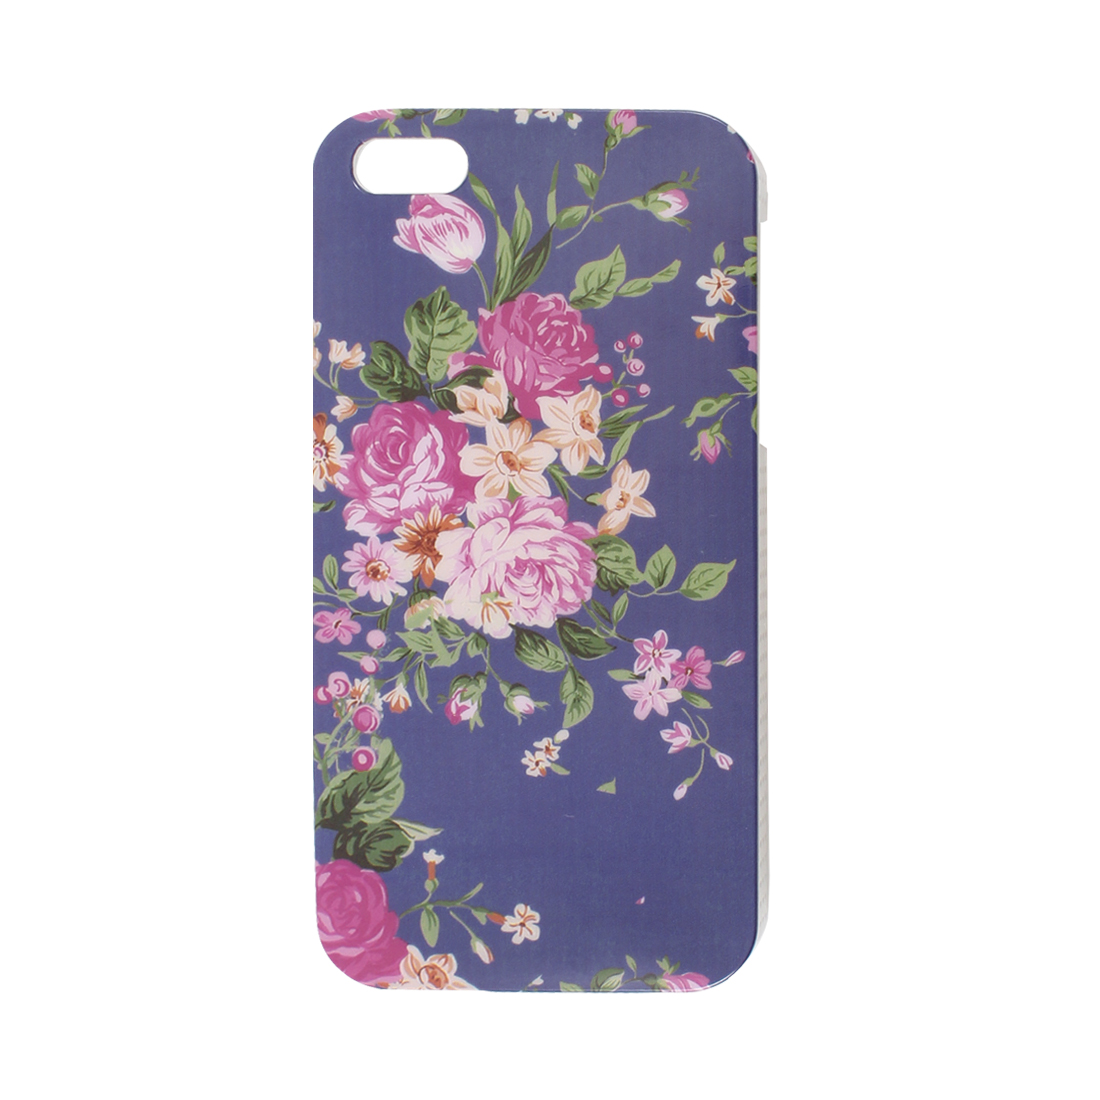 Floral Pattern Blue Background IMD Hard Plastic Back Case Cover for iPhone 5 5G